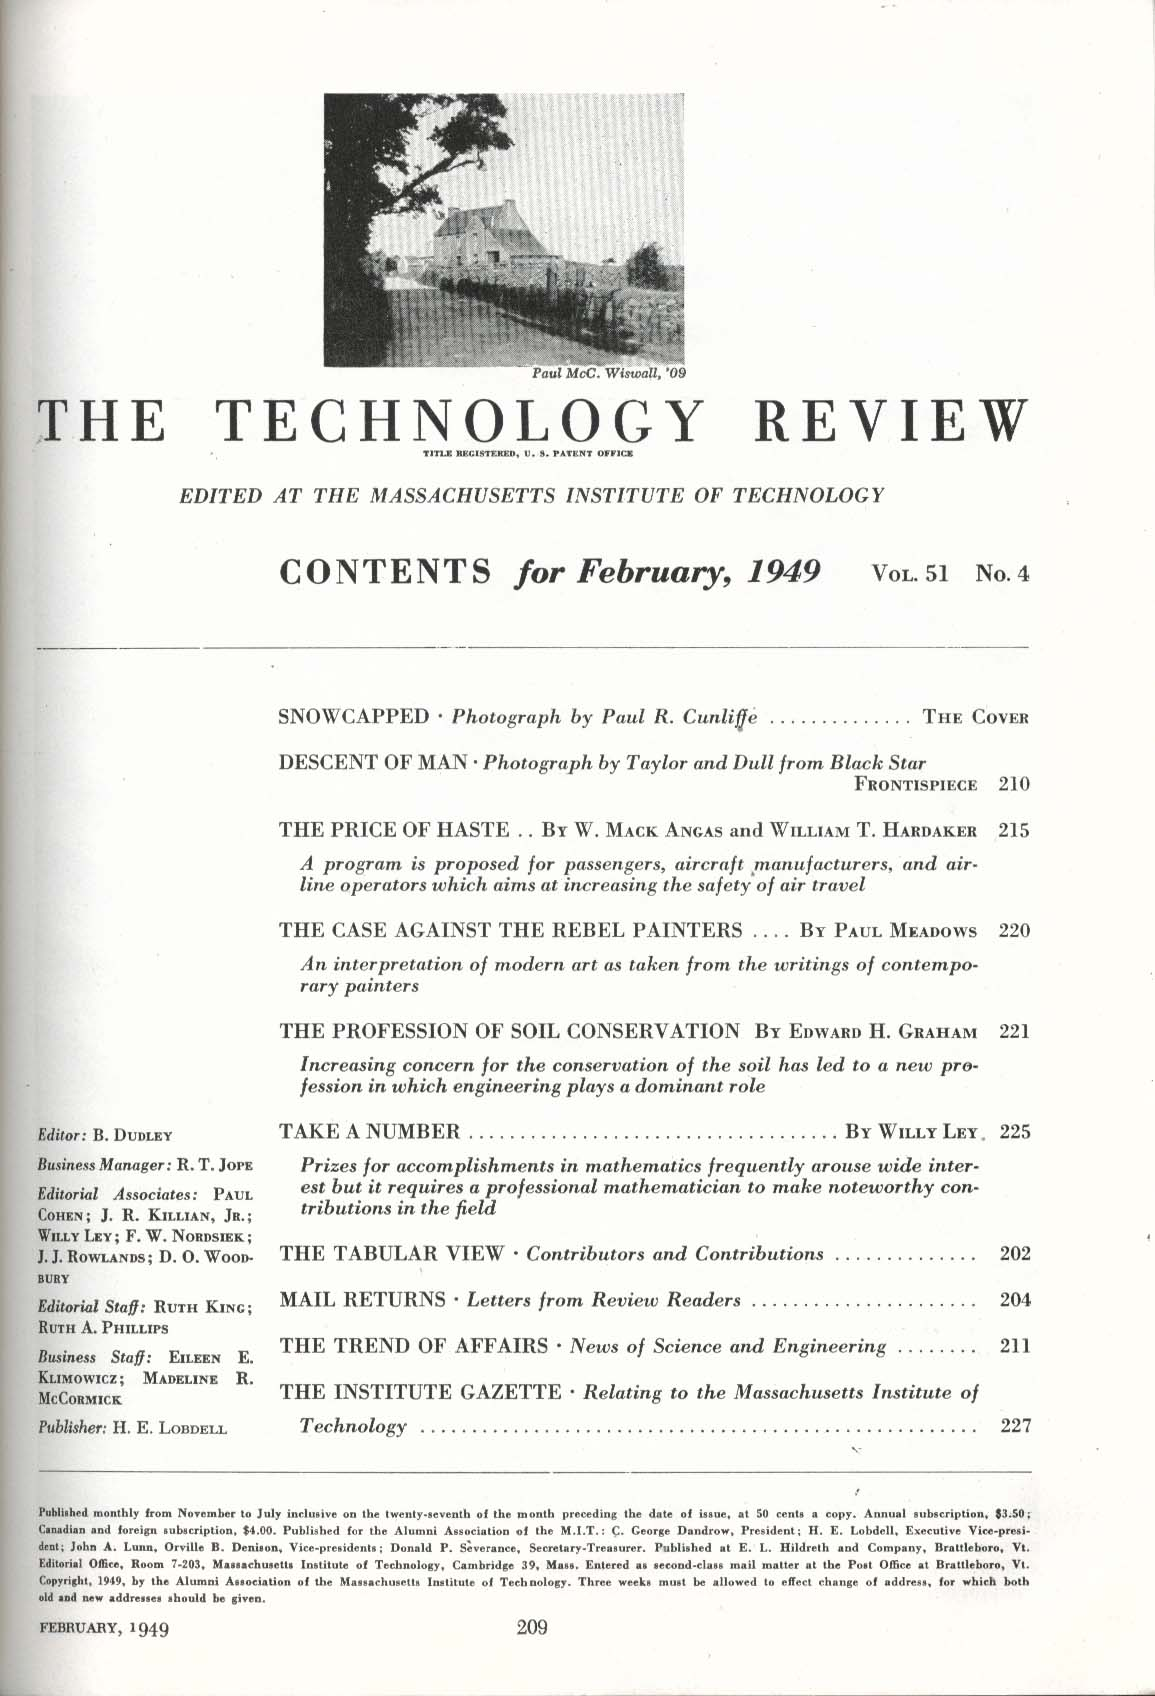 TECHNOLOGY REVIEW Soil Conservation Aircraft Manufacturers Airline Safety 2 1949